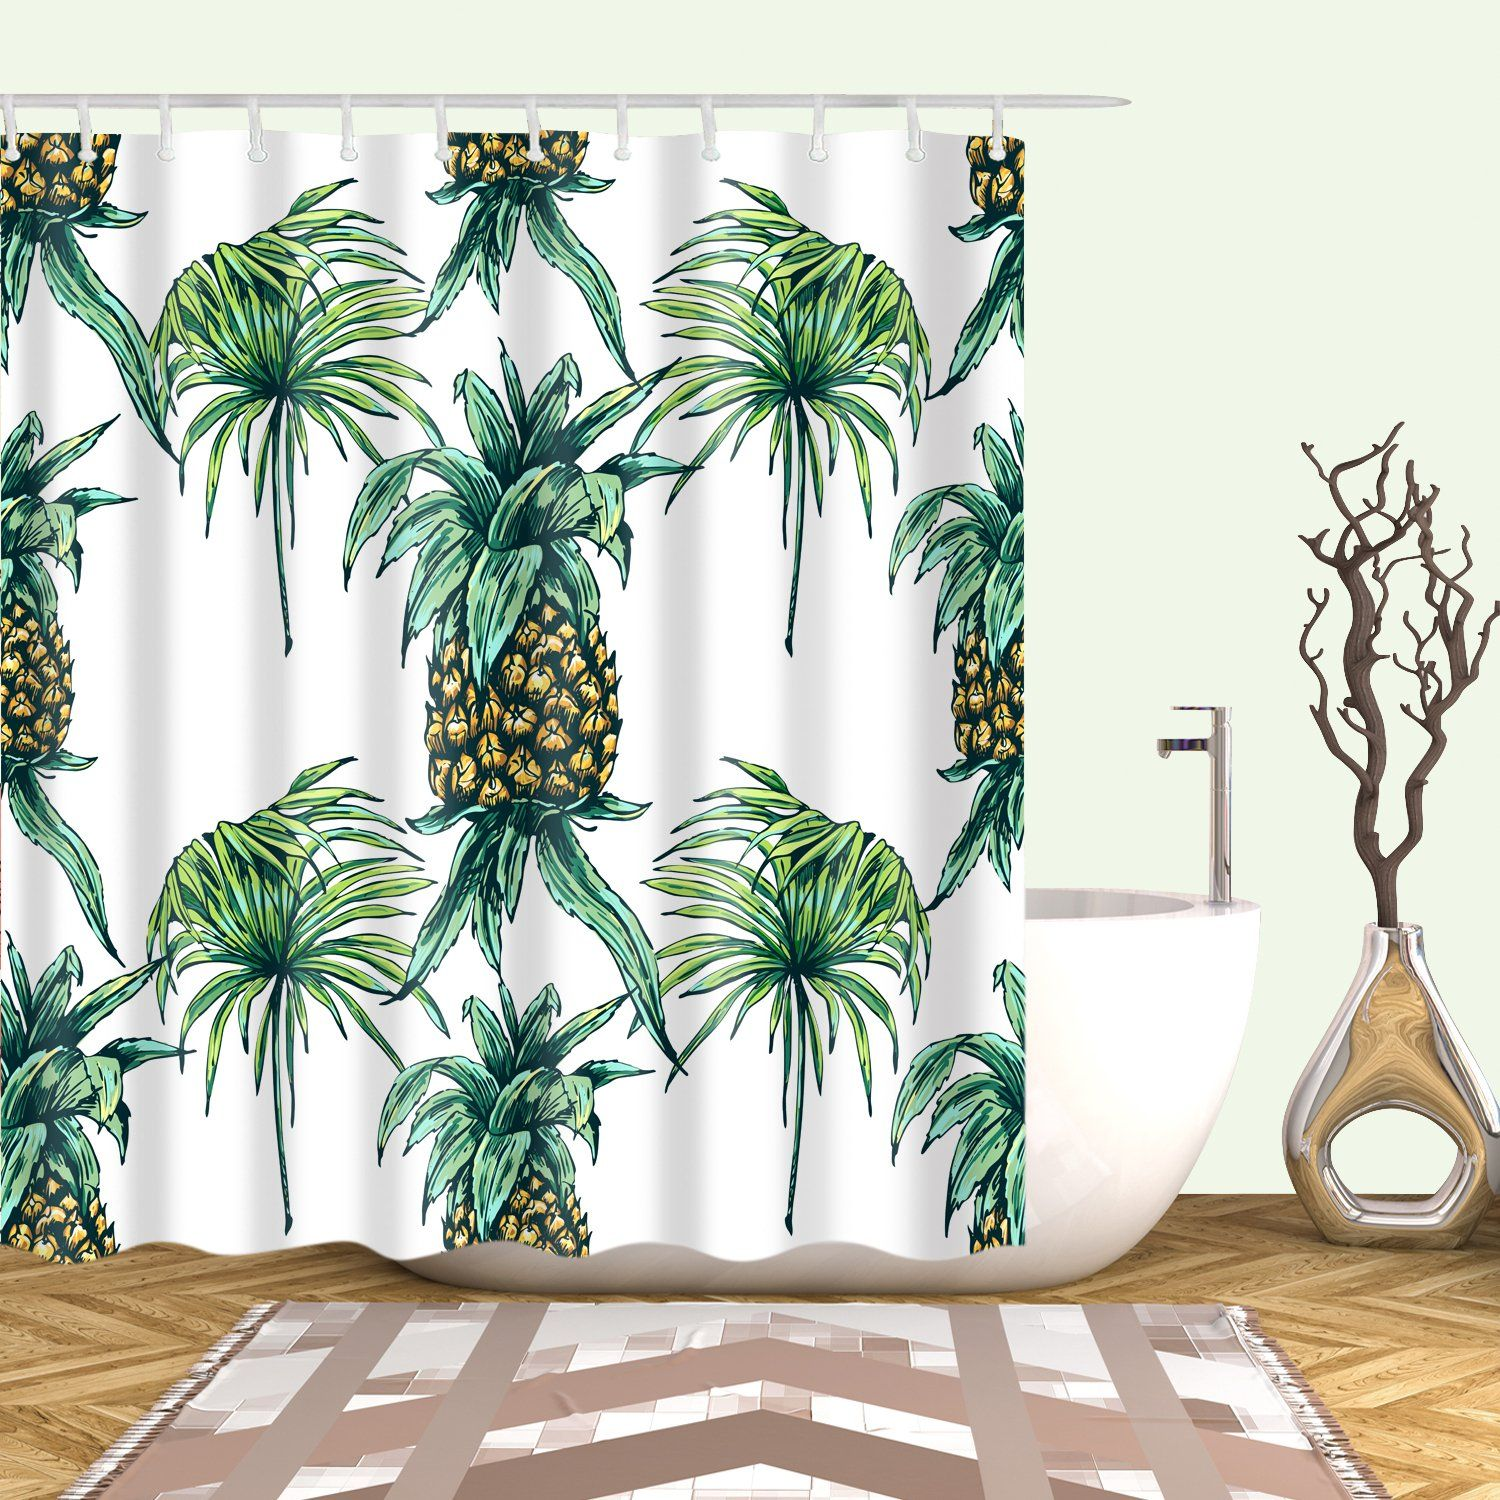 Tropical Fruit Drawing Pineapple Shower Curtain Bathroom Decor In